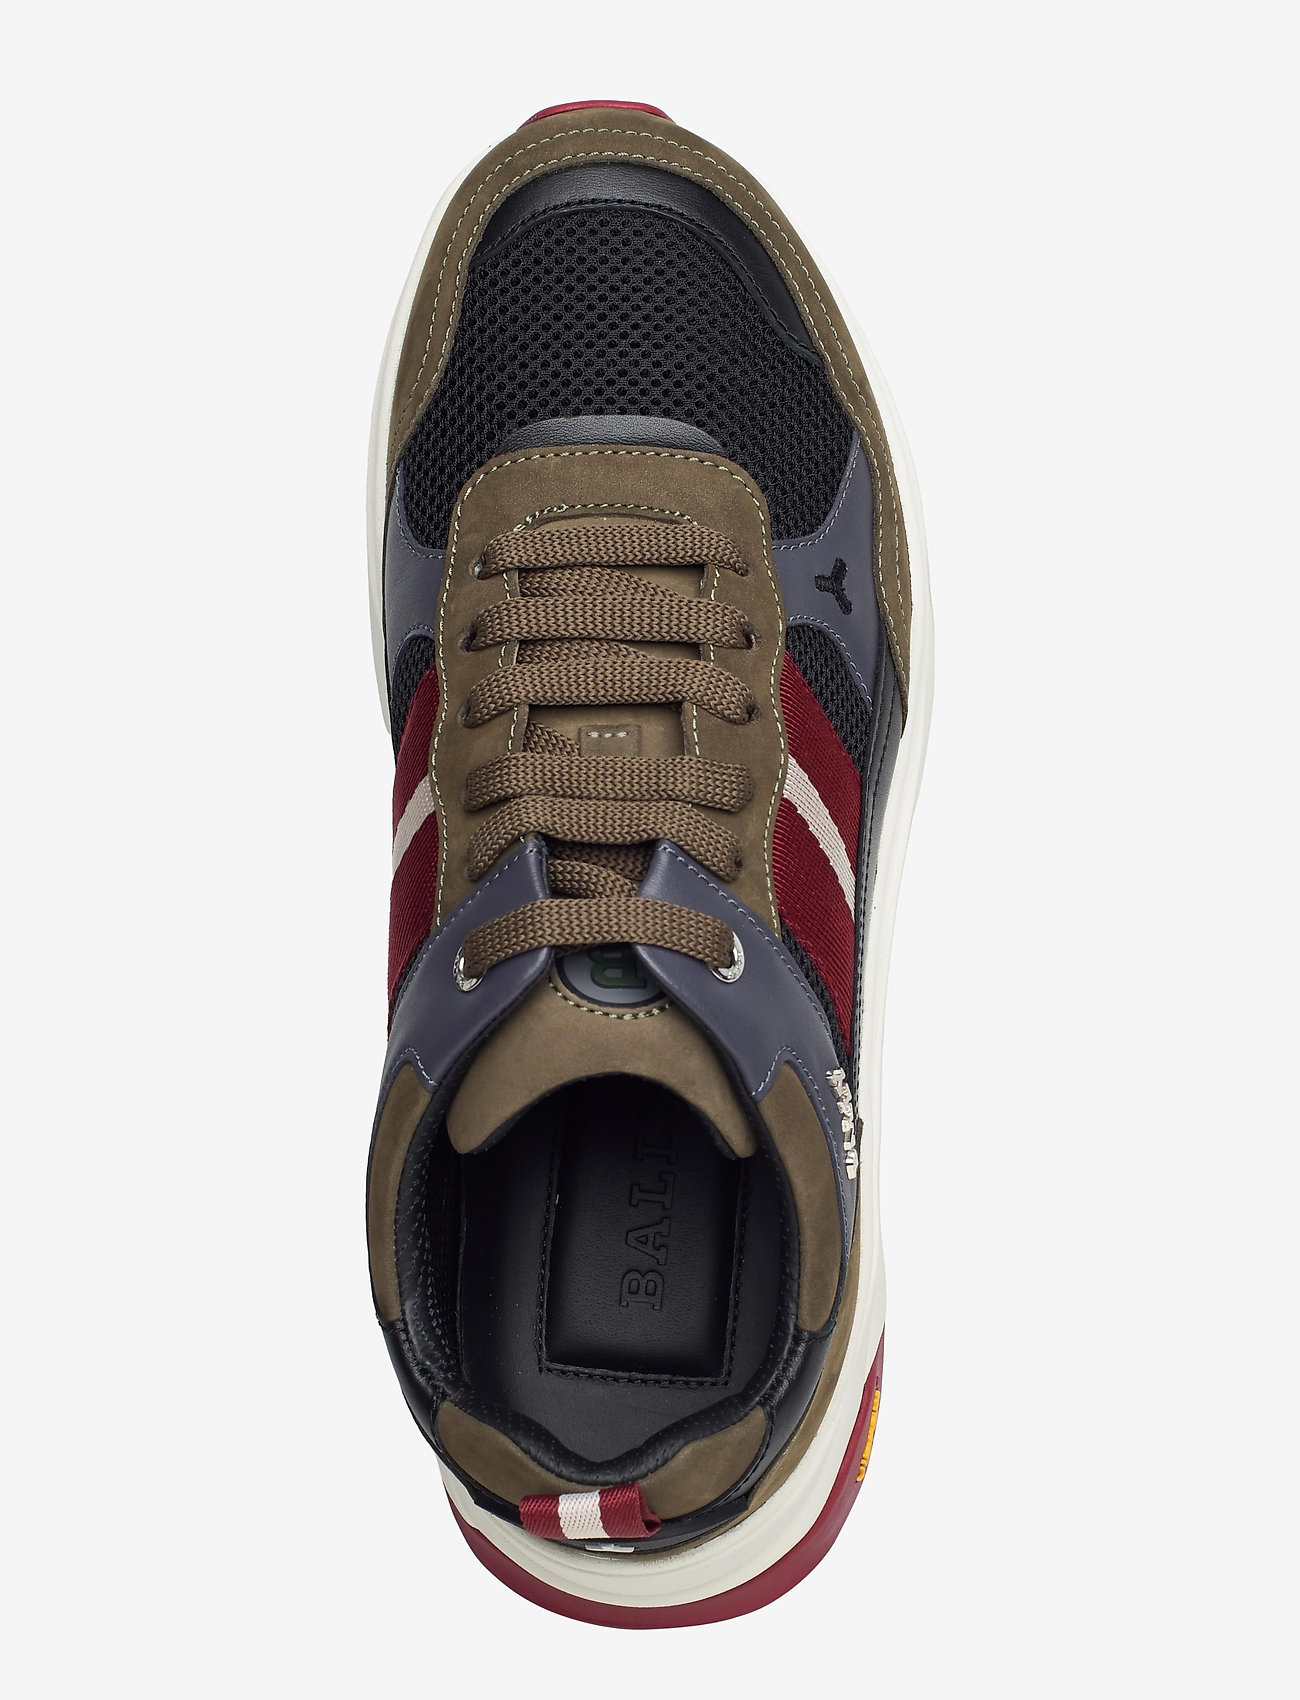 Bally urban sneakers, khaki